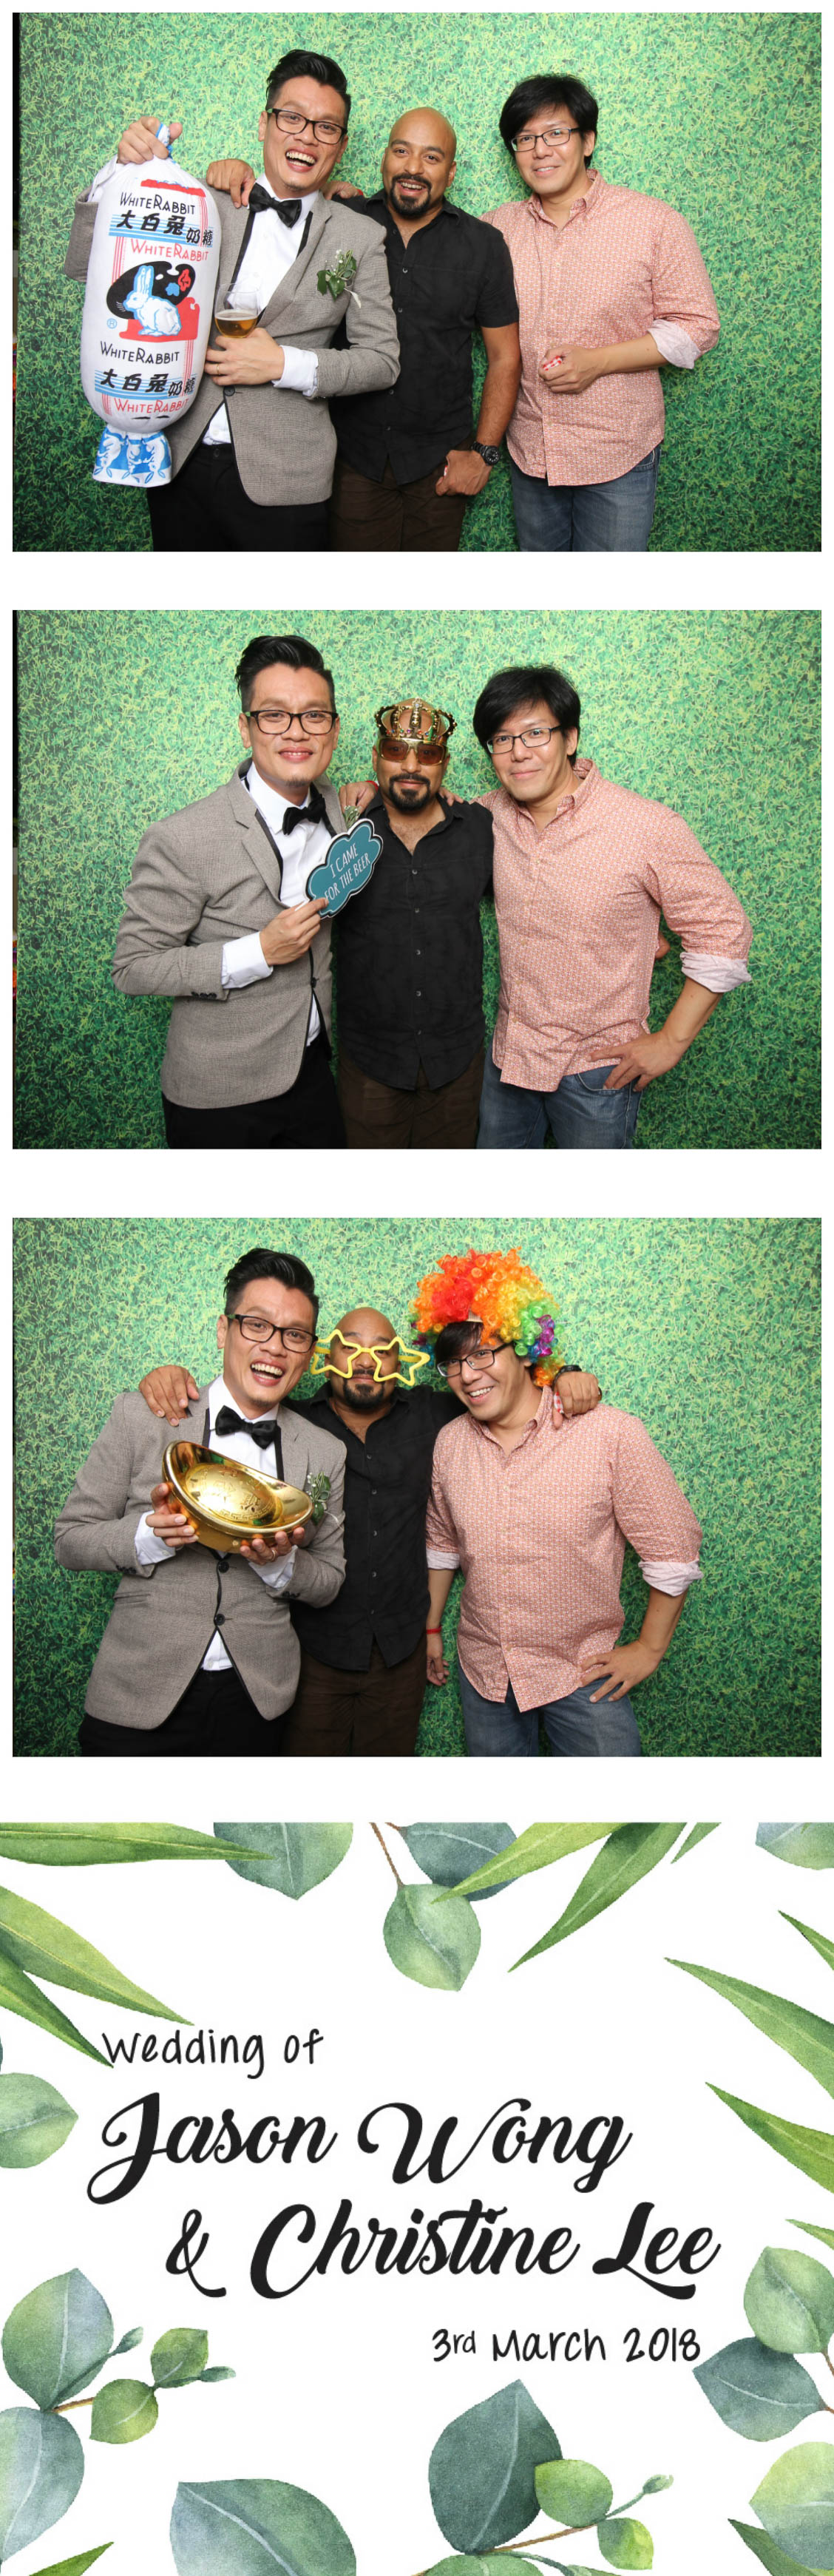 Photobooth 0302-54